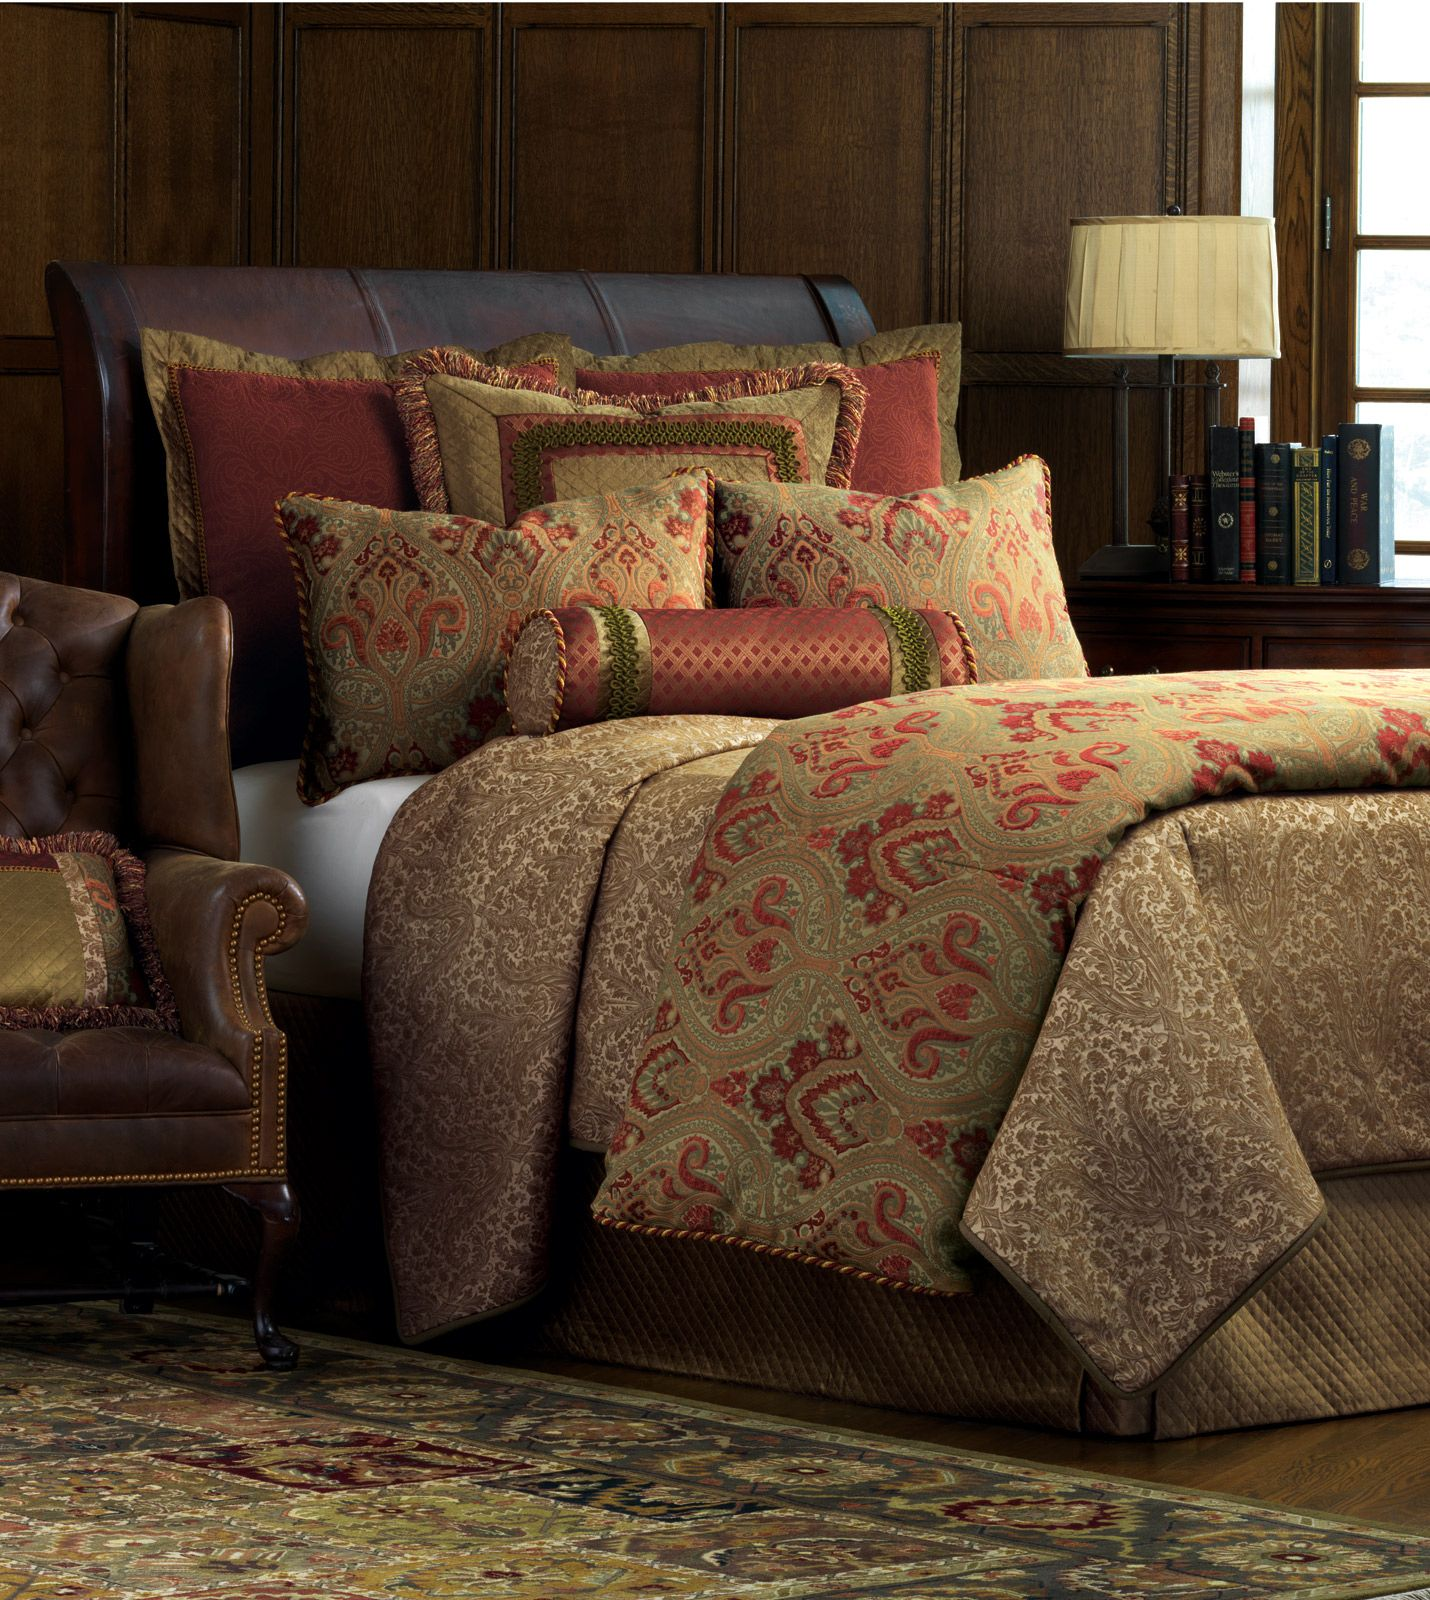 Master Bedroom Bedding Collections Luxury Bedding By Eastern Accents Botham Bedset Lovely Bedding